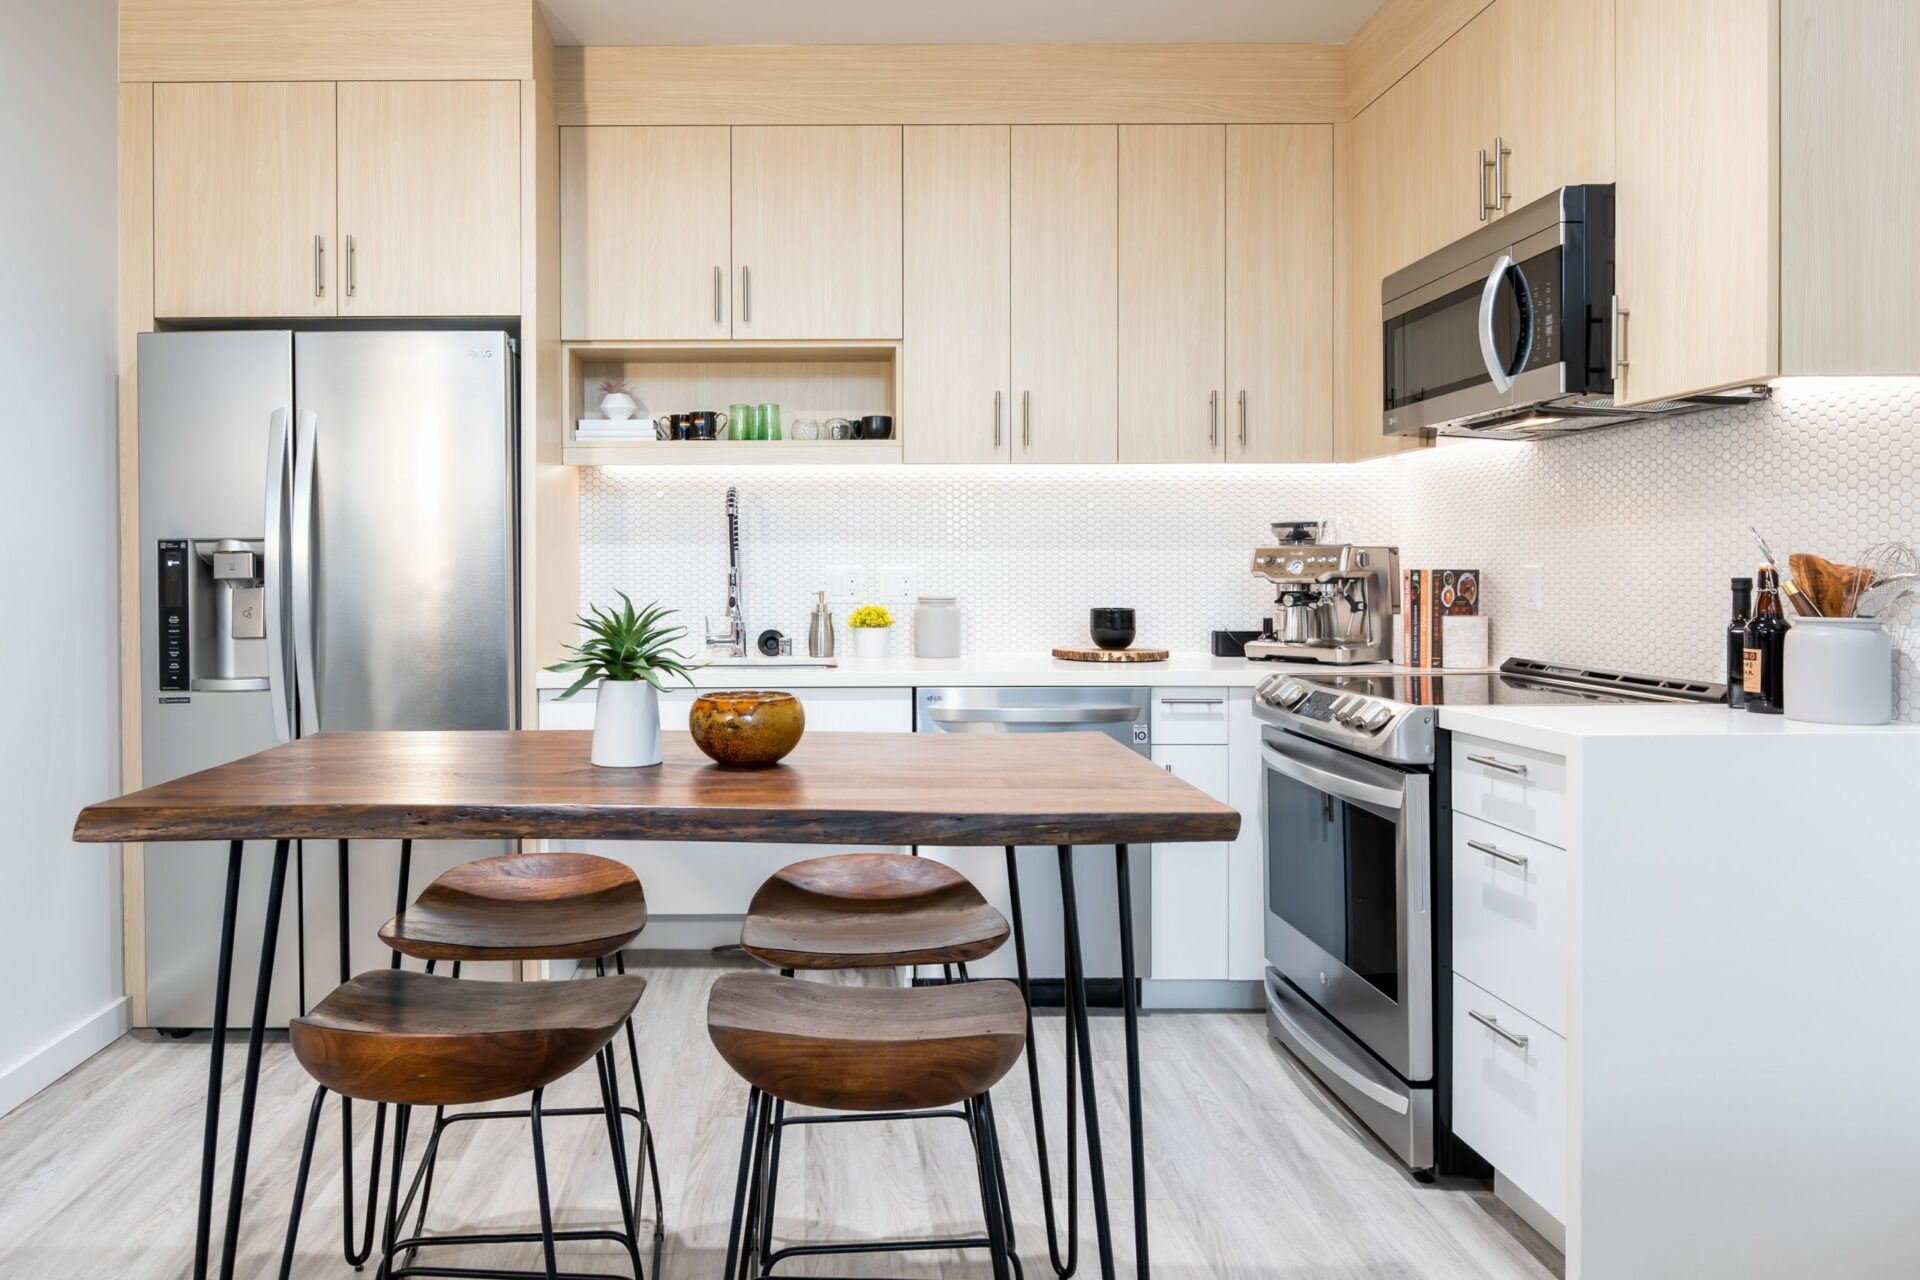 2 Bed Townhome Open Kitchen